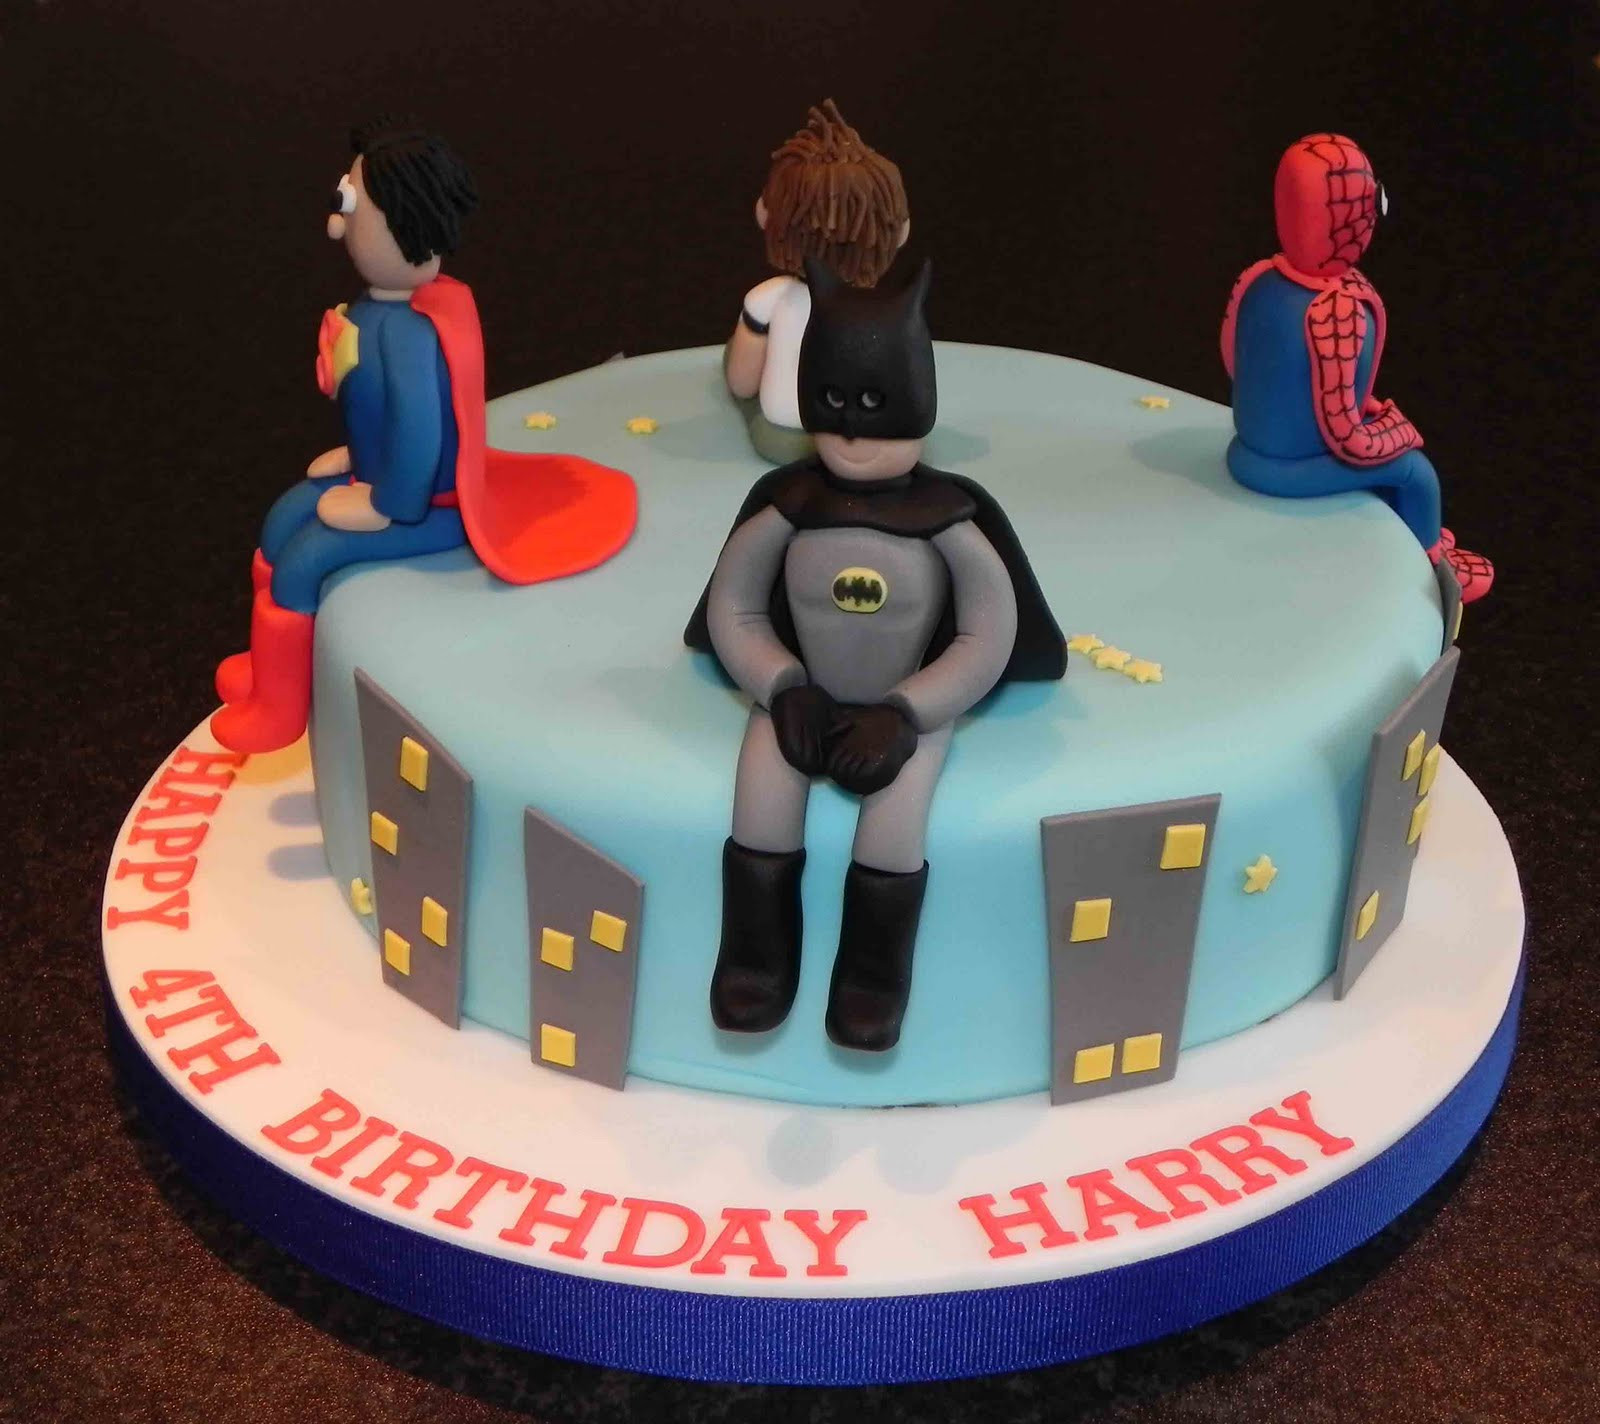 Best ideas about Superhero Birthday Cake . Save or Pin Cake by Lisa Price Super Hero cake Now.